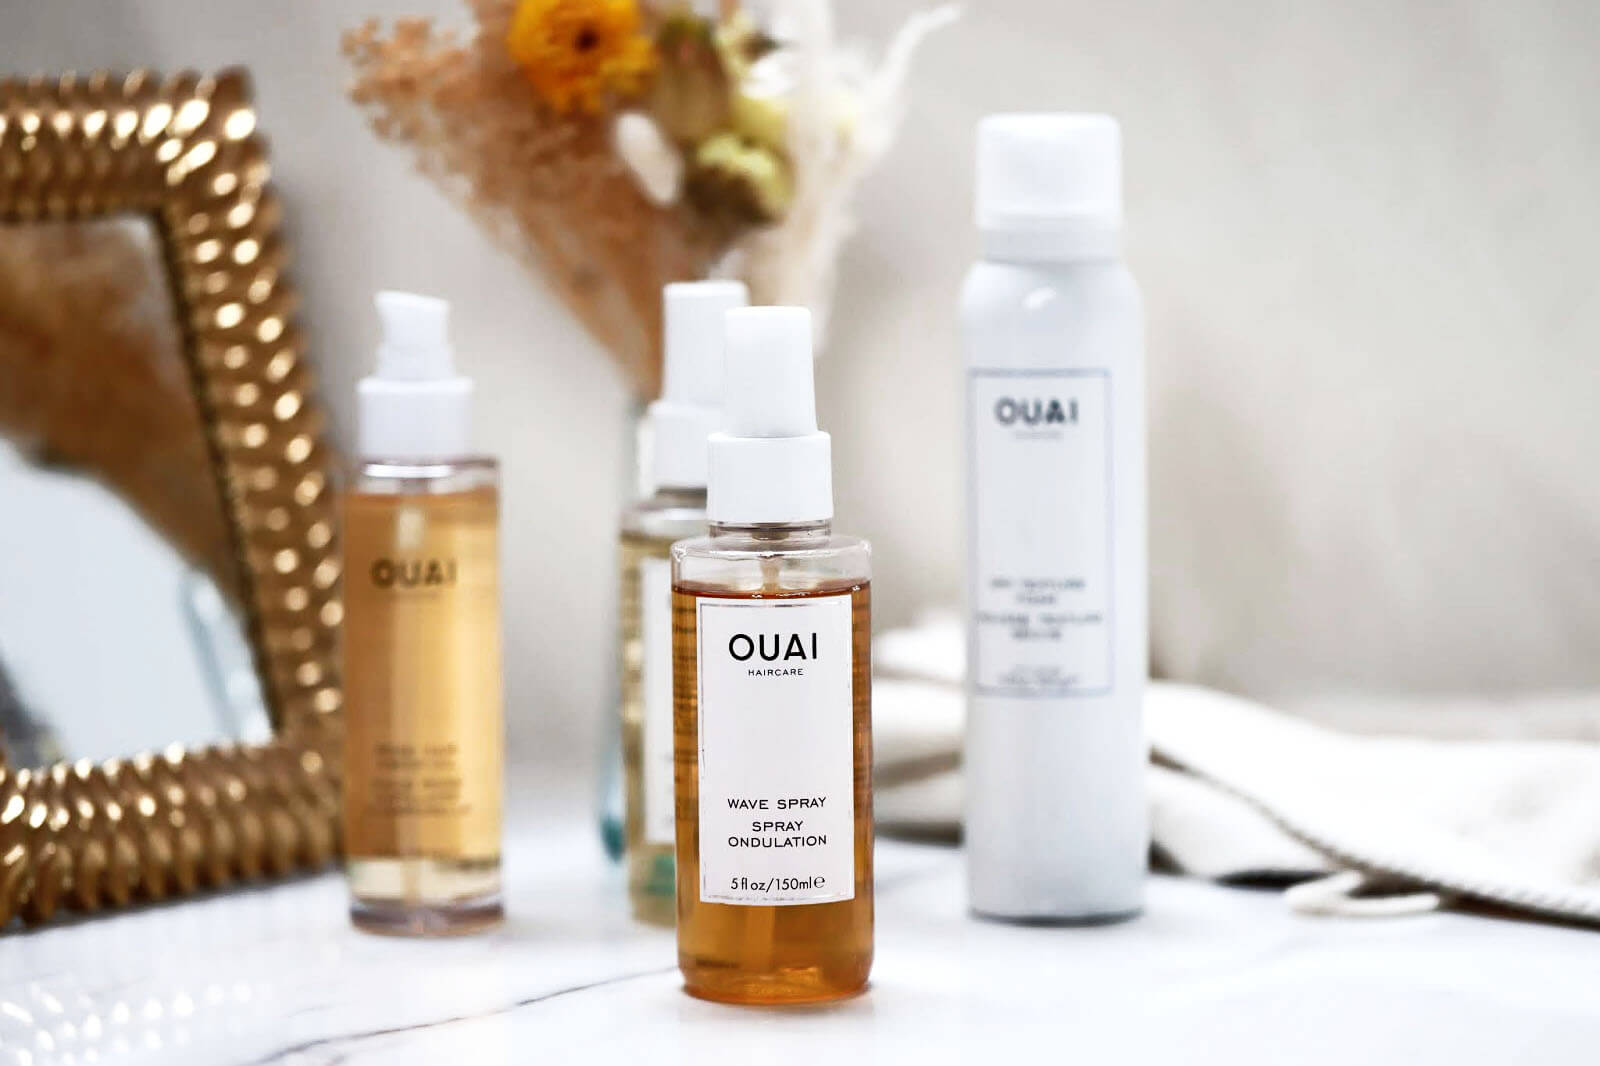 Ouai Spray Ondulation Avis